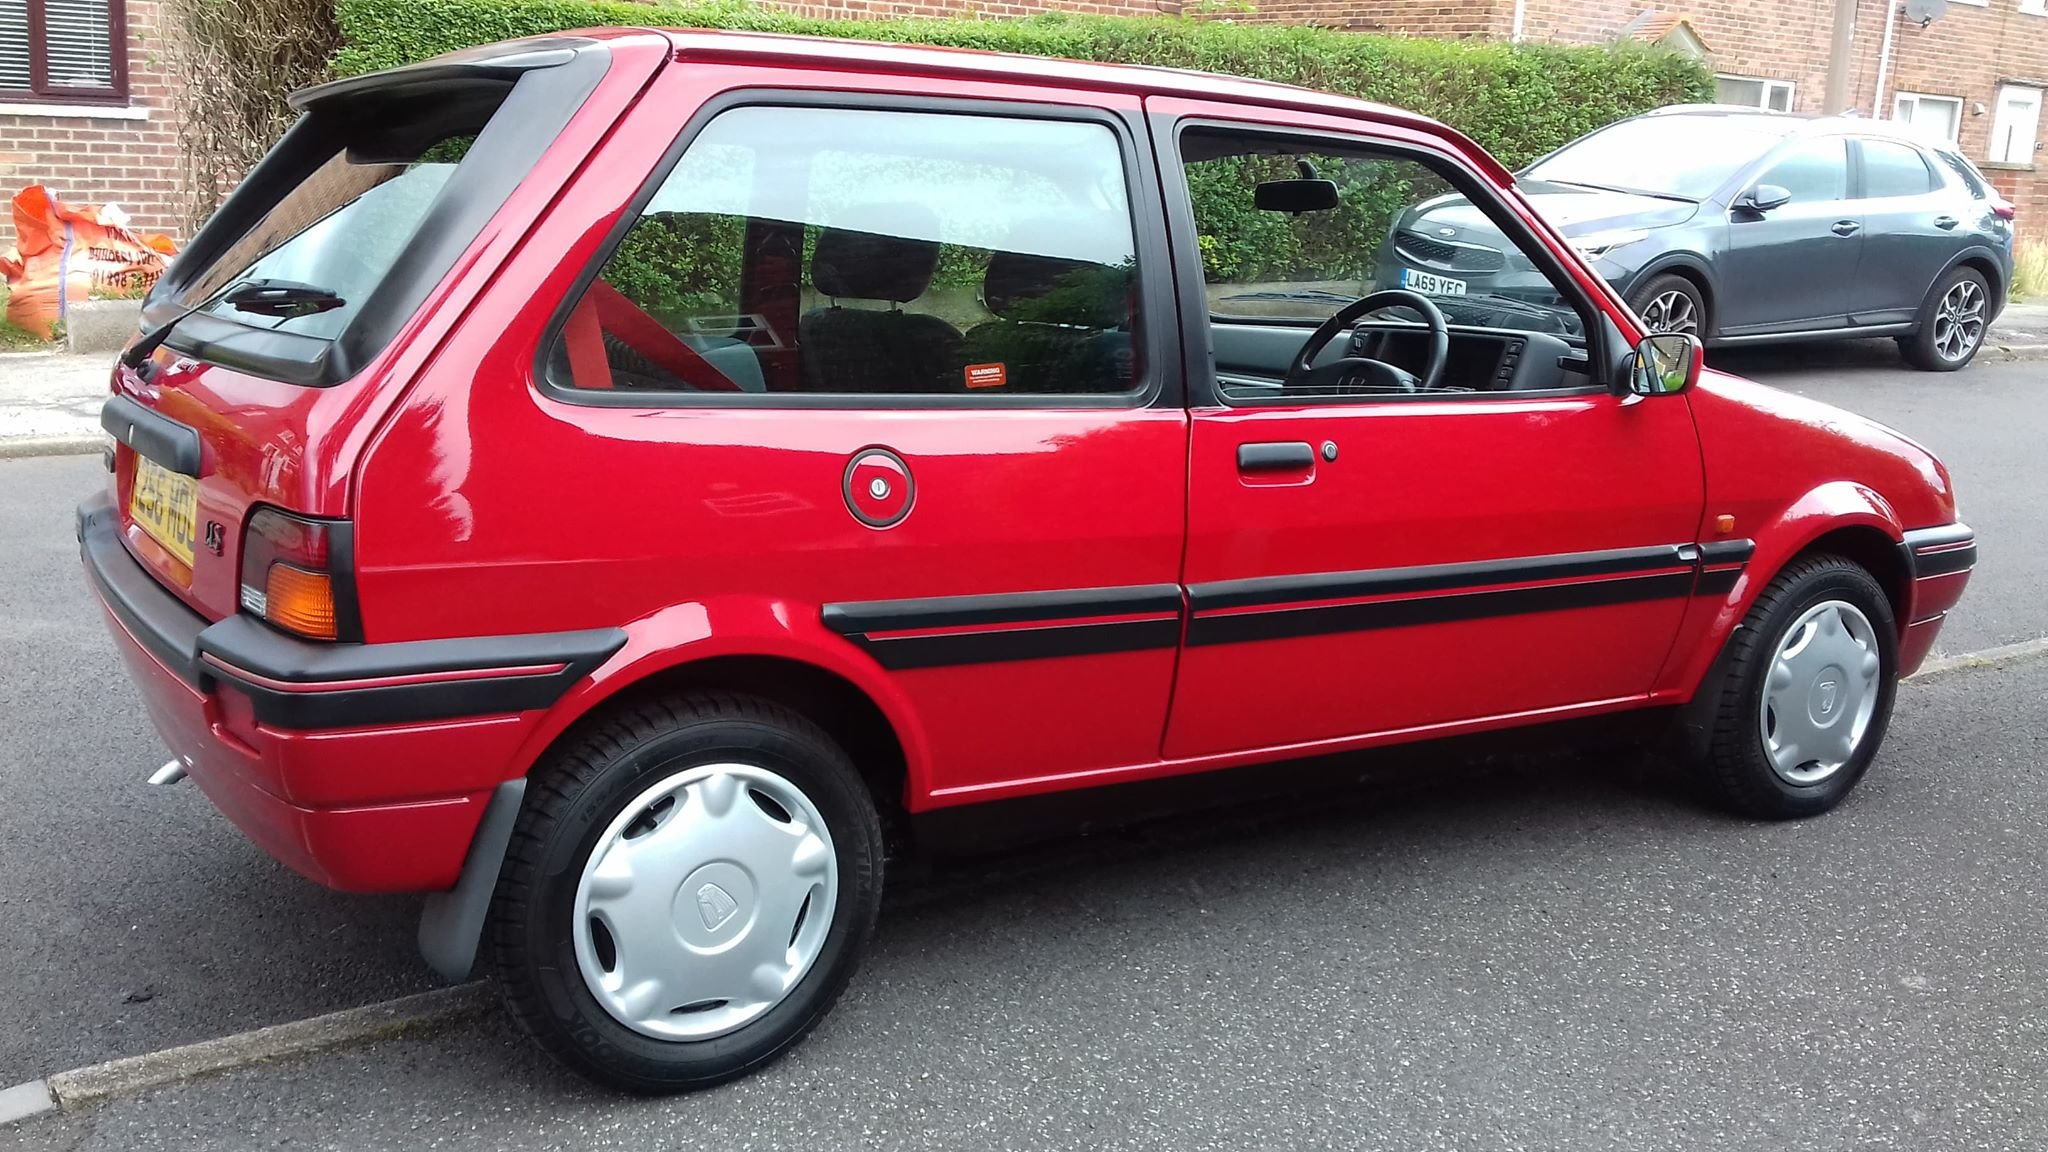 1992 Austin/rover metro 1.1 sport SOLD (picture 1 of 6)